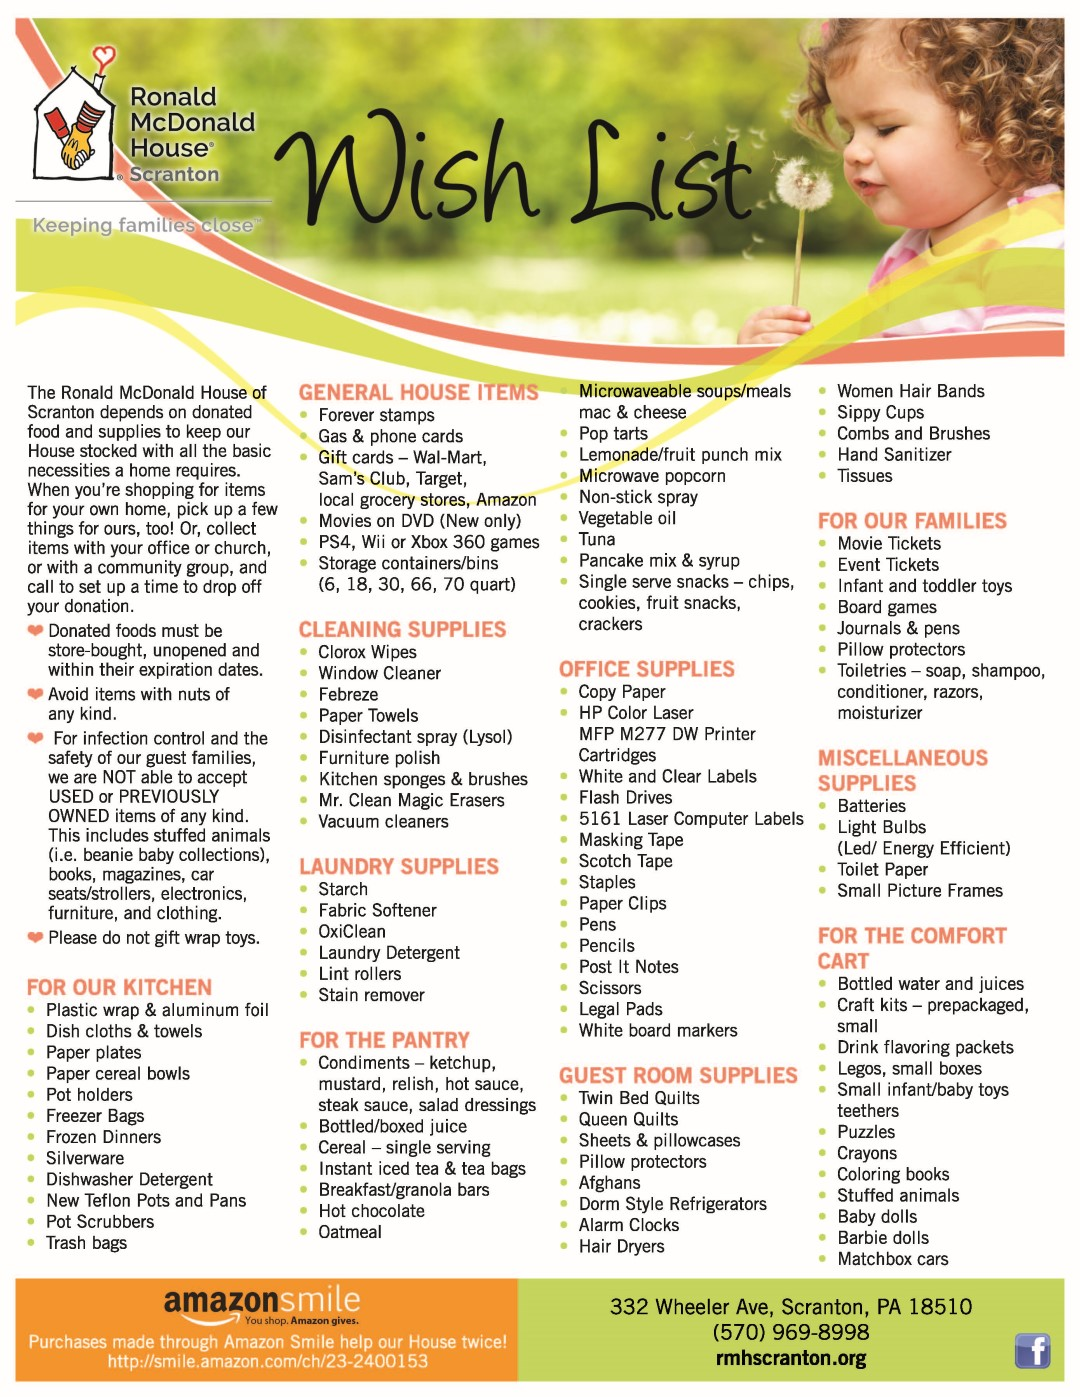 RMH-Wish-List-Flyer-September-2019